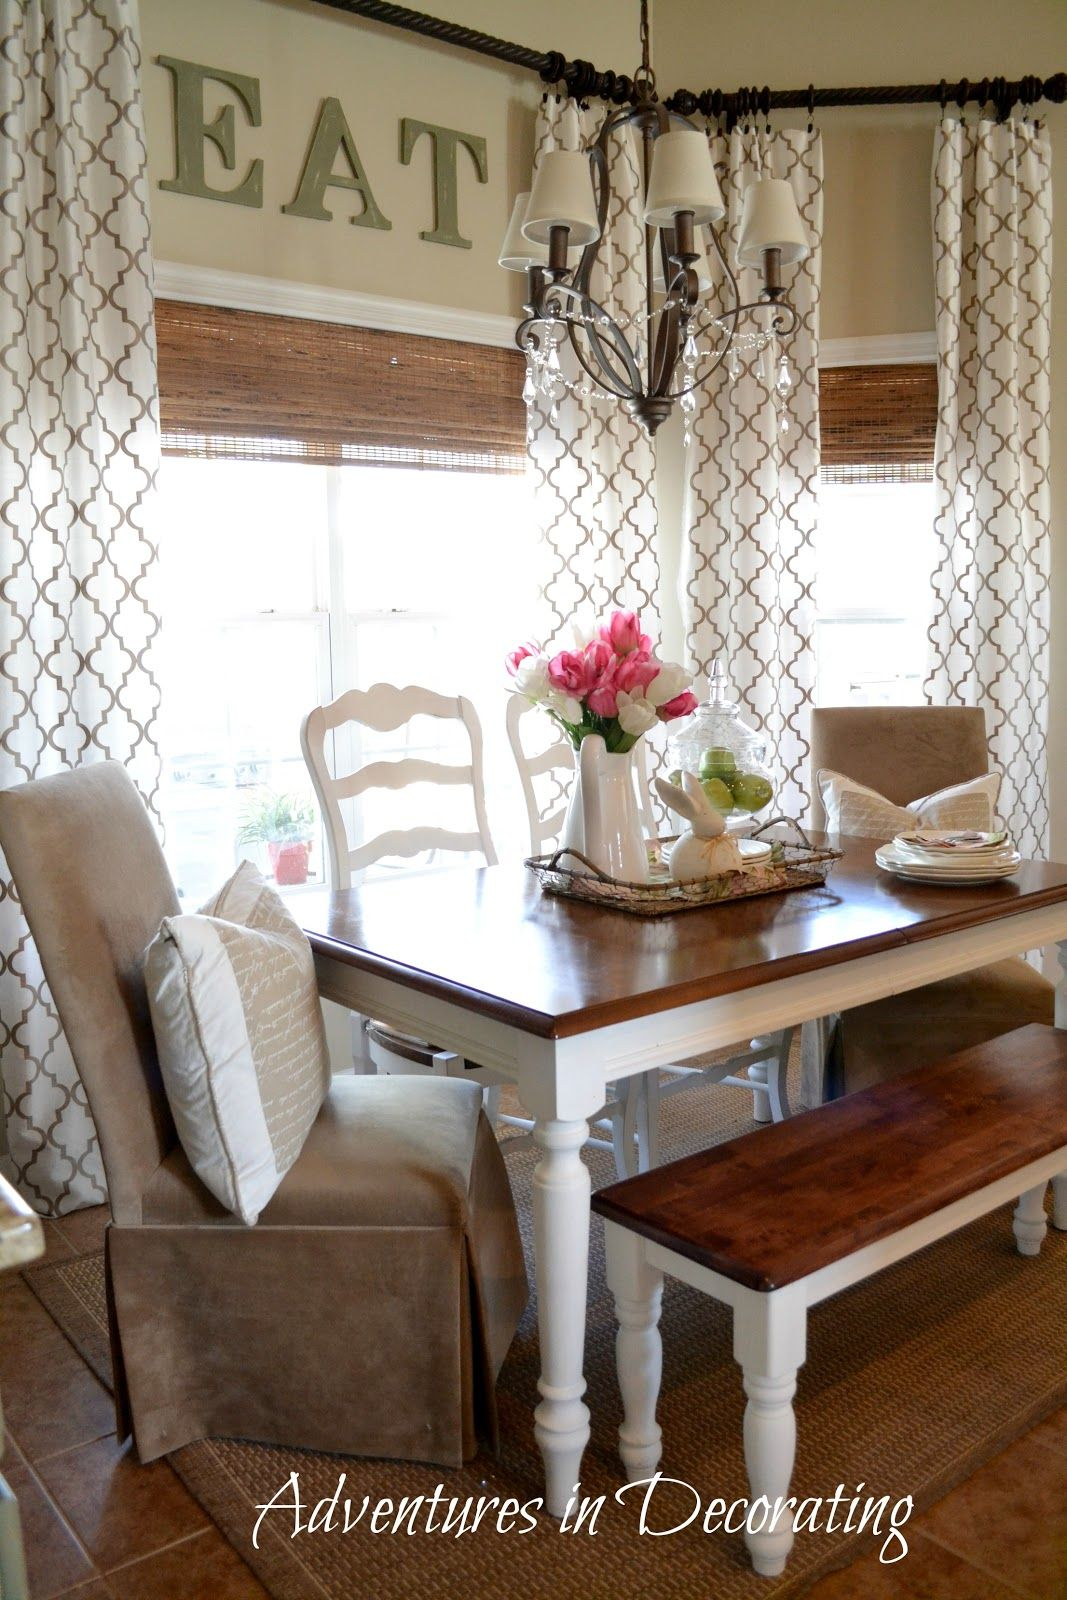 Bay window, farmhouse table, bench, and different chairs